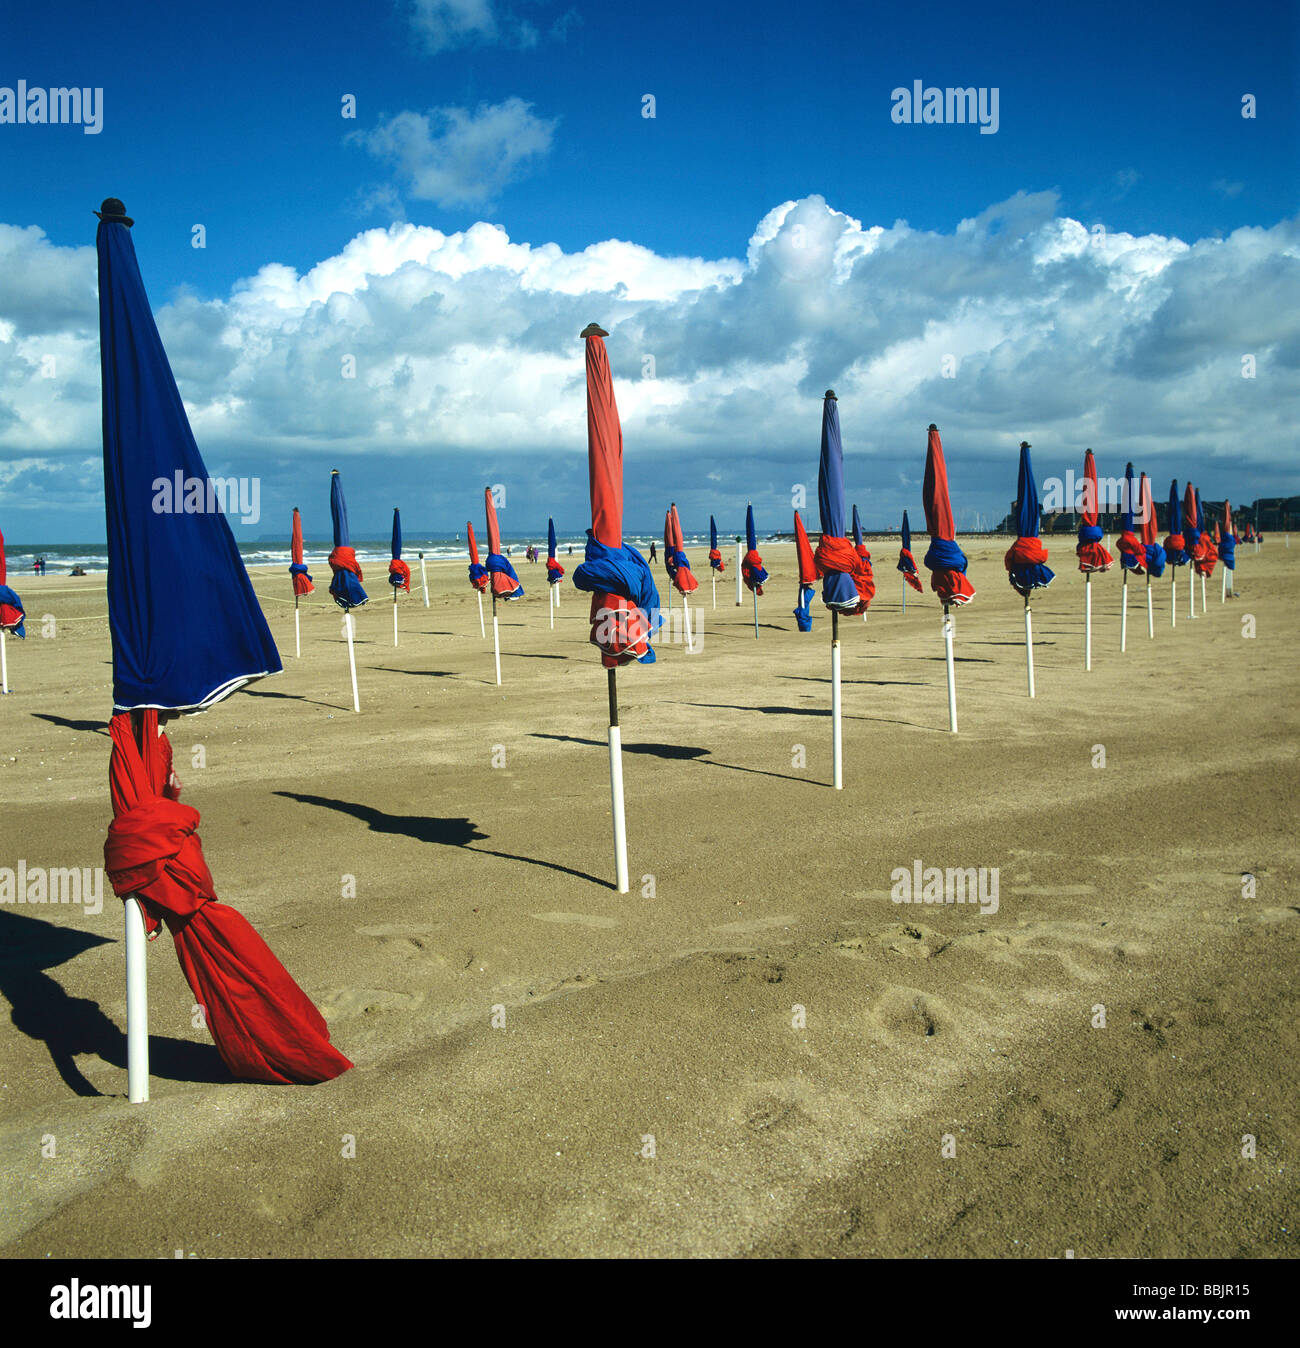 Deauville beach, Normandy coast, France. - Stock Image